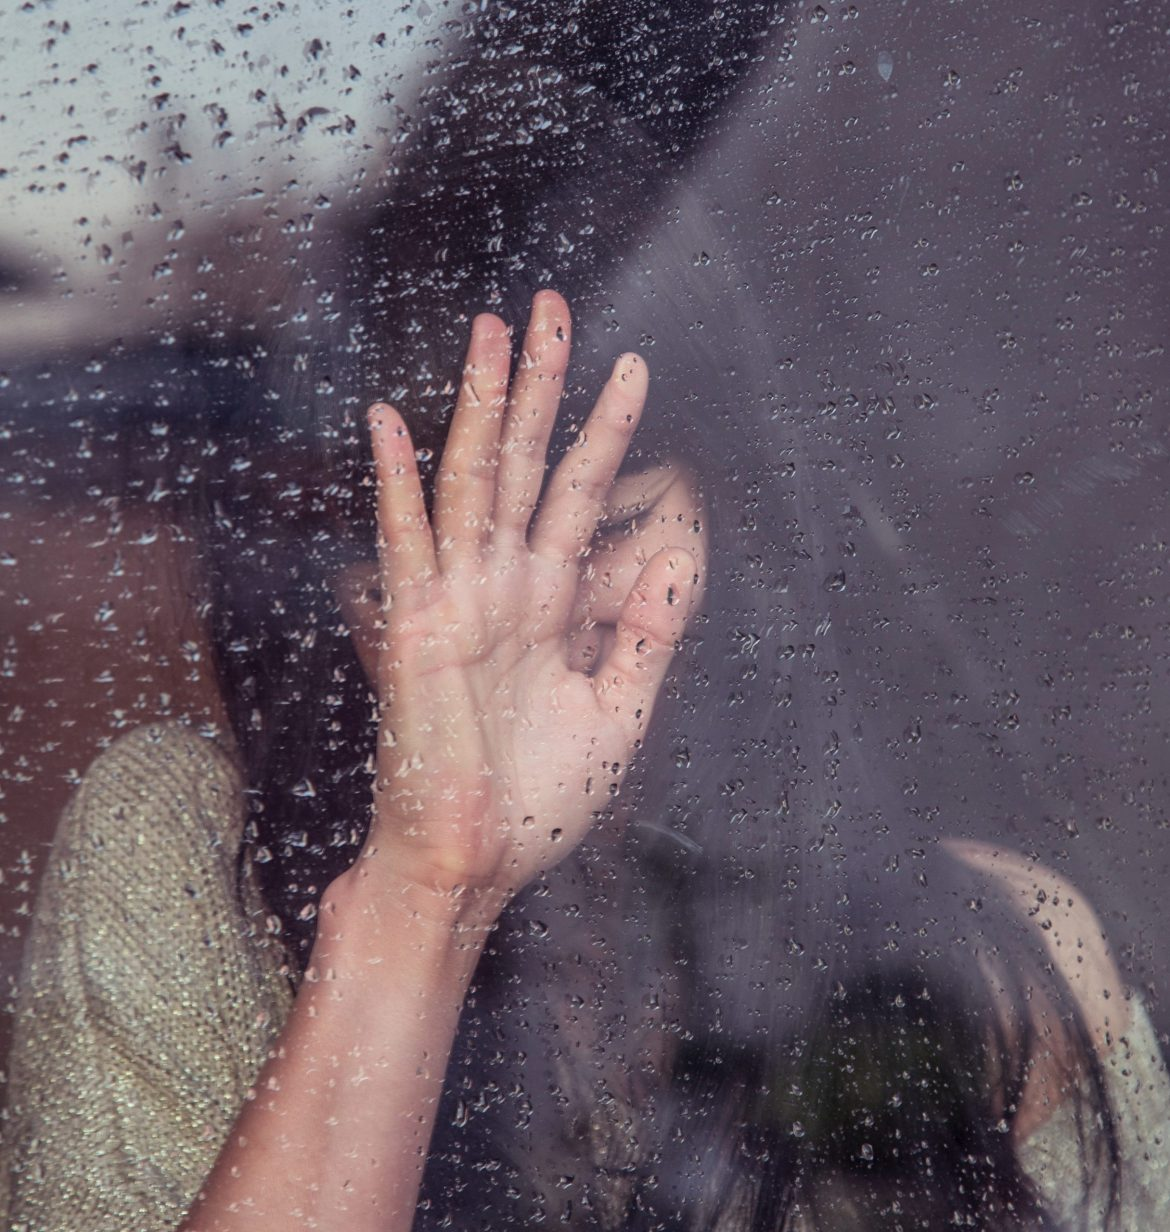 woman pressed against glass window with rain outside